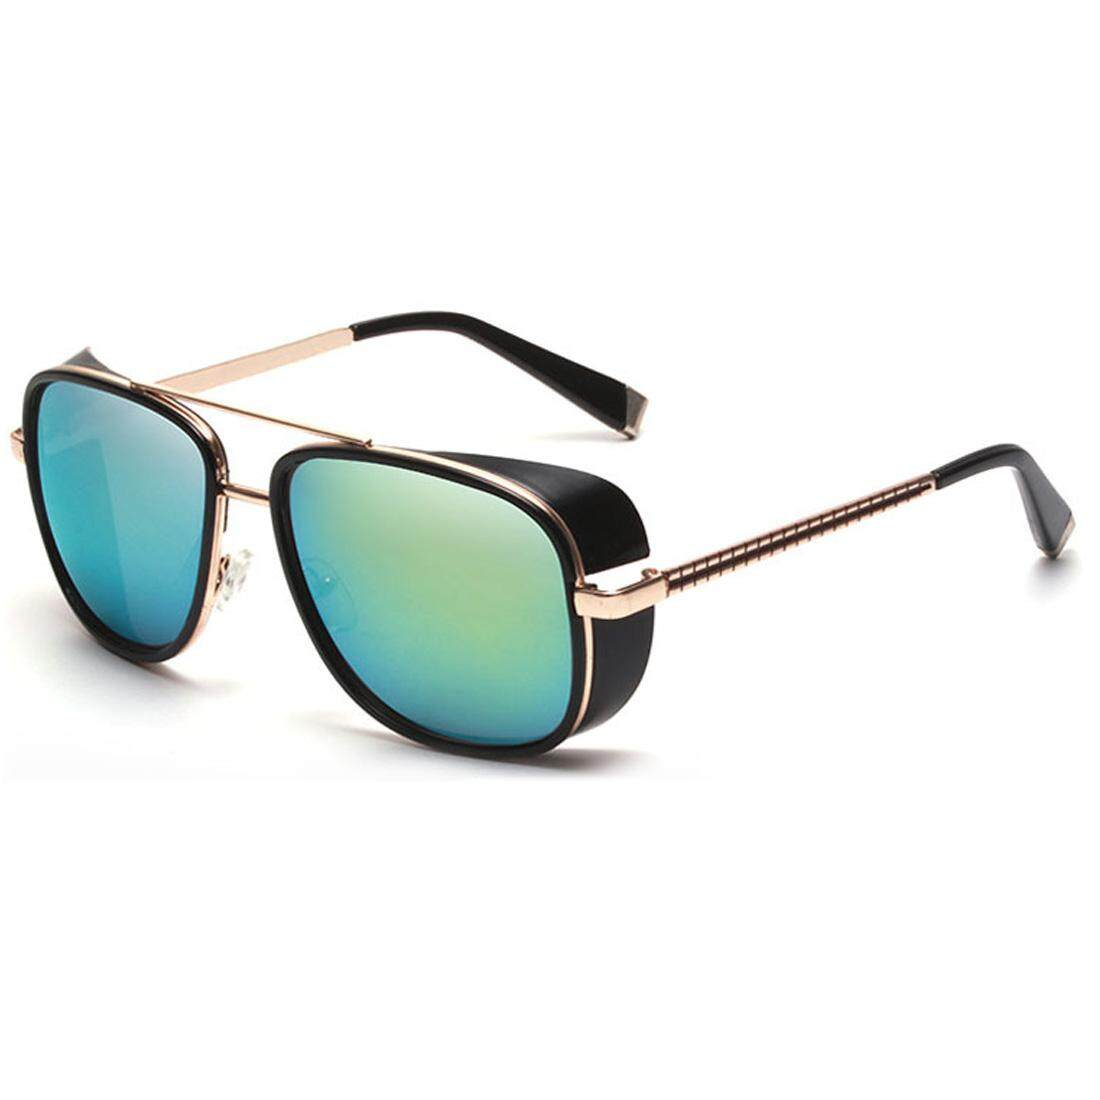 0062e264c3f57 Sunglasses For Men for sale - Mens Sunglasses online brands